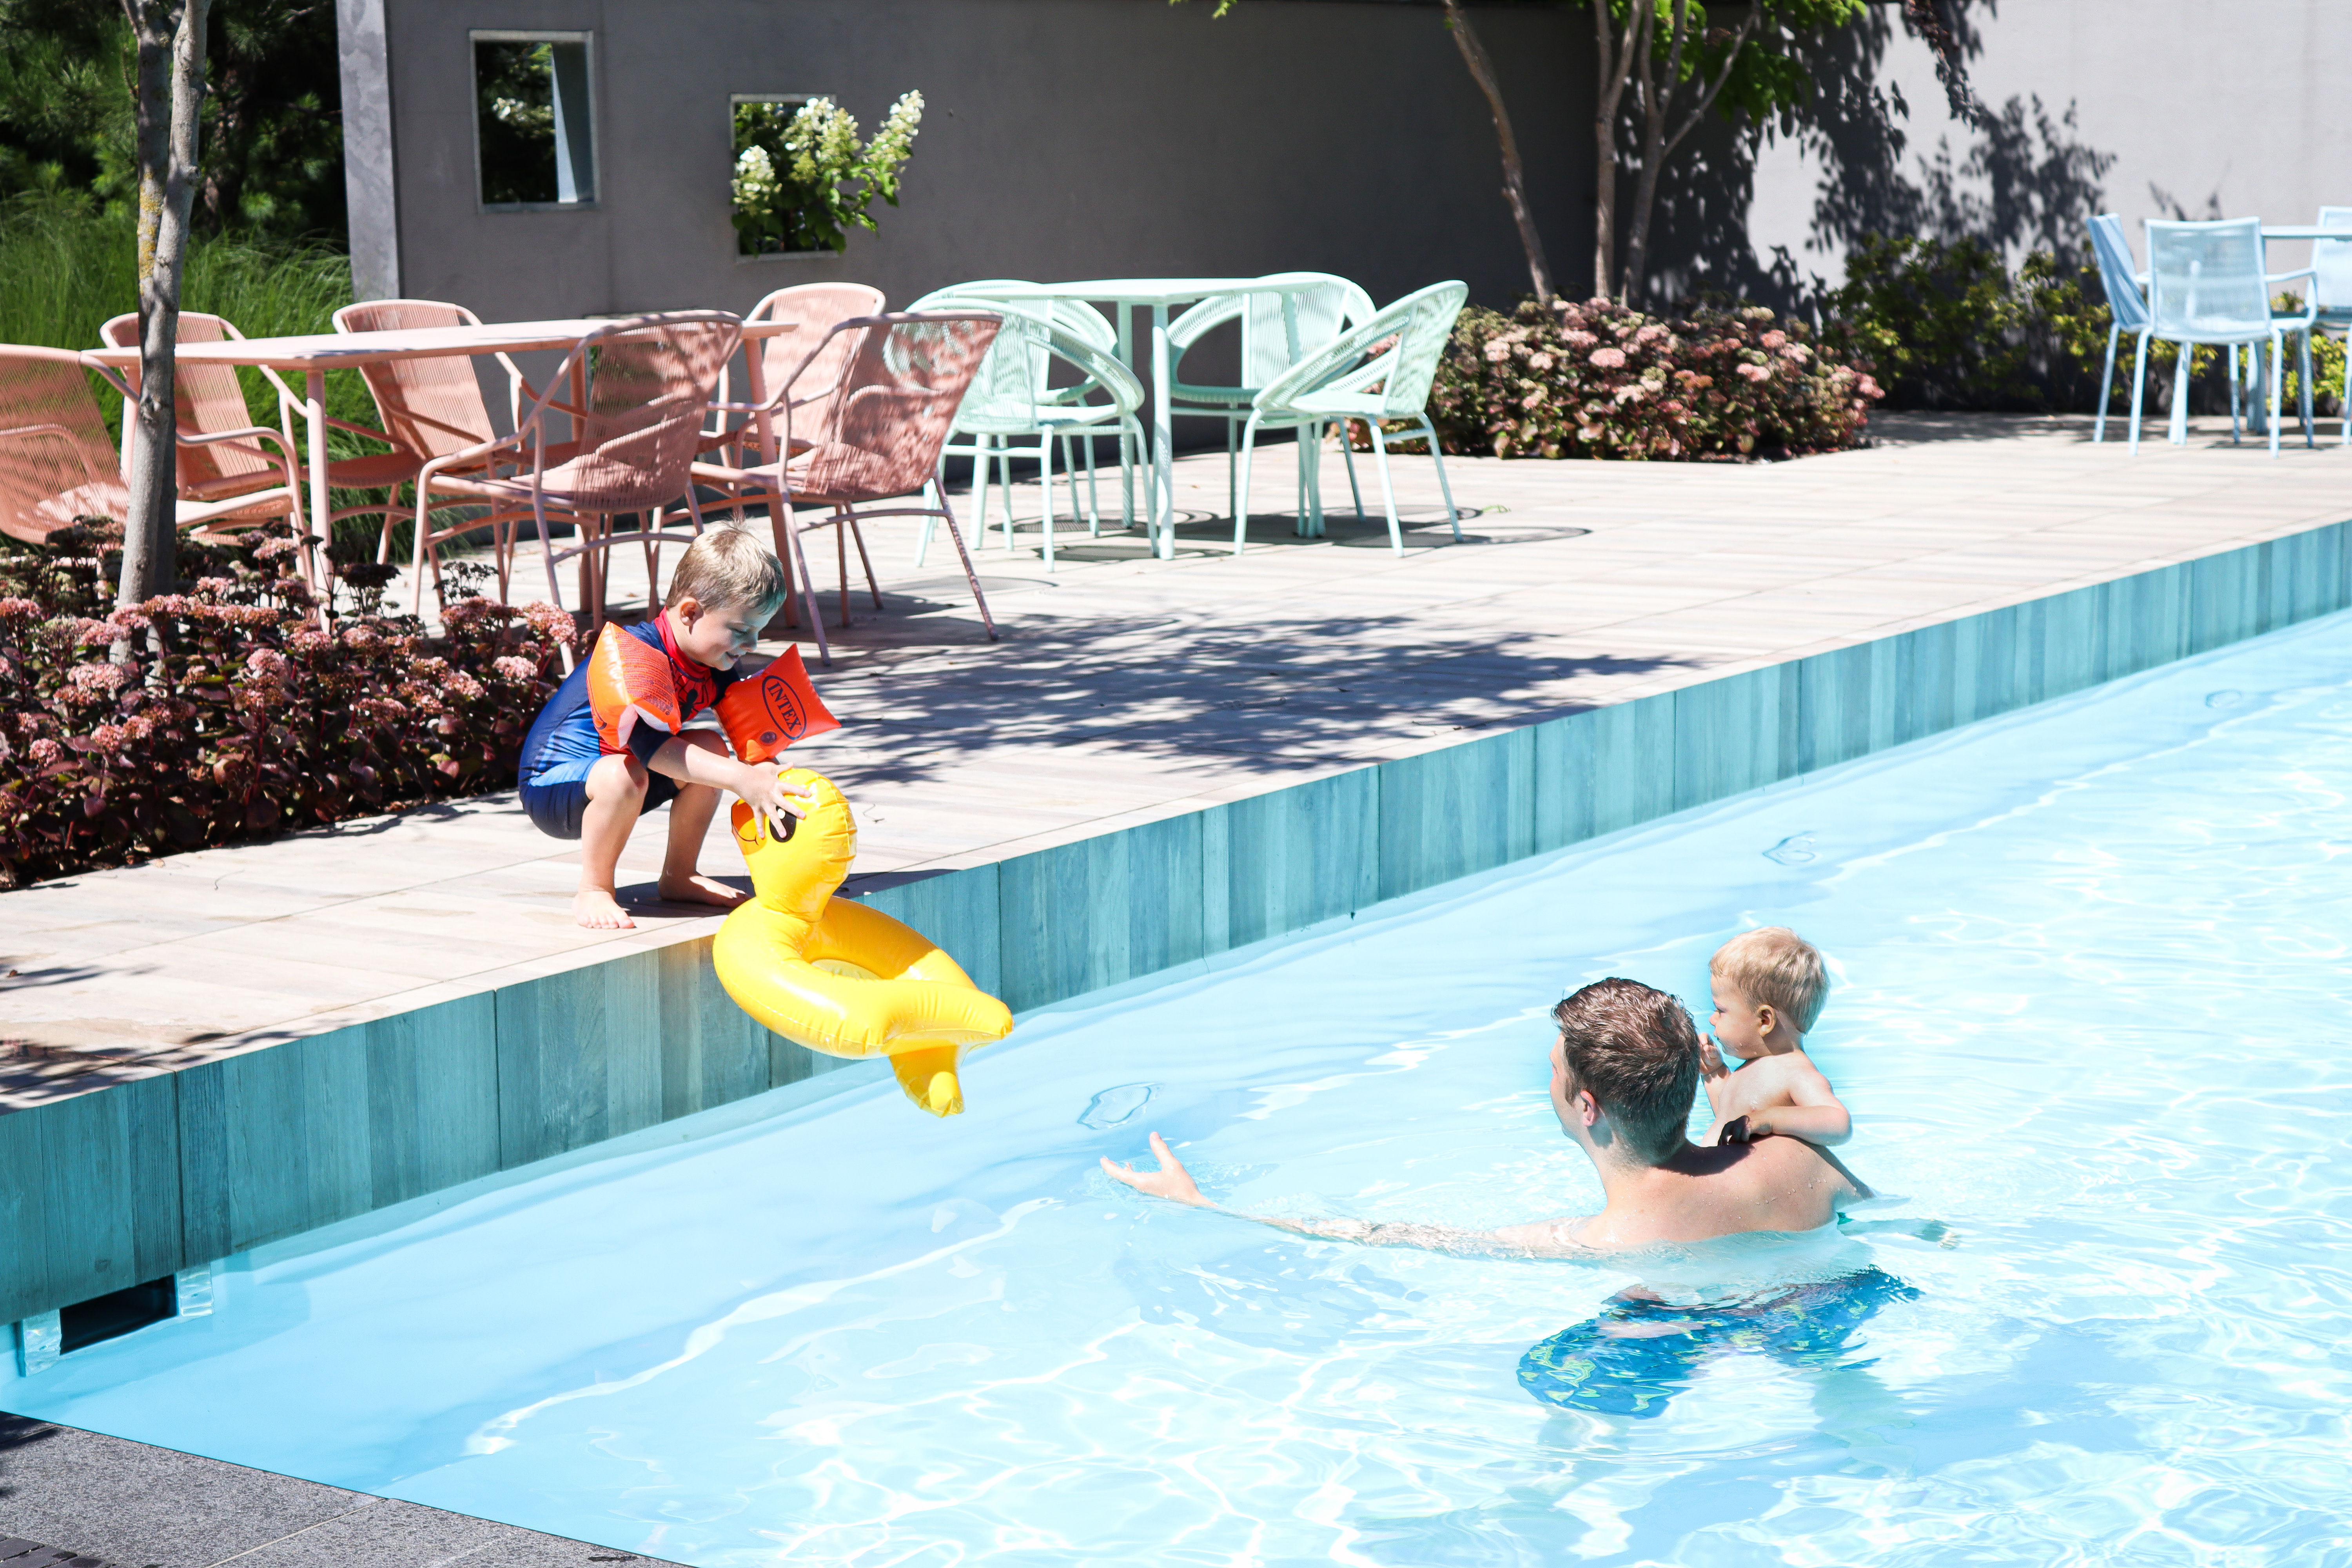 Familiezwembad-dynamic-pool.jpg?mtime=20210430123220#asset:35900